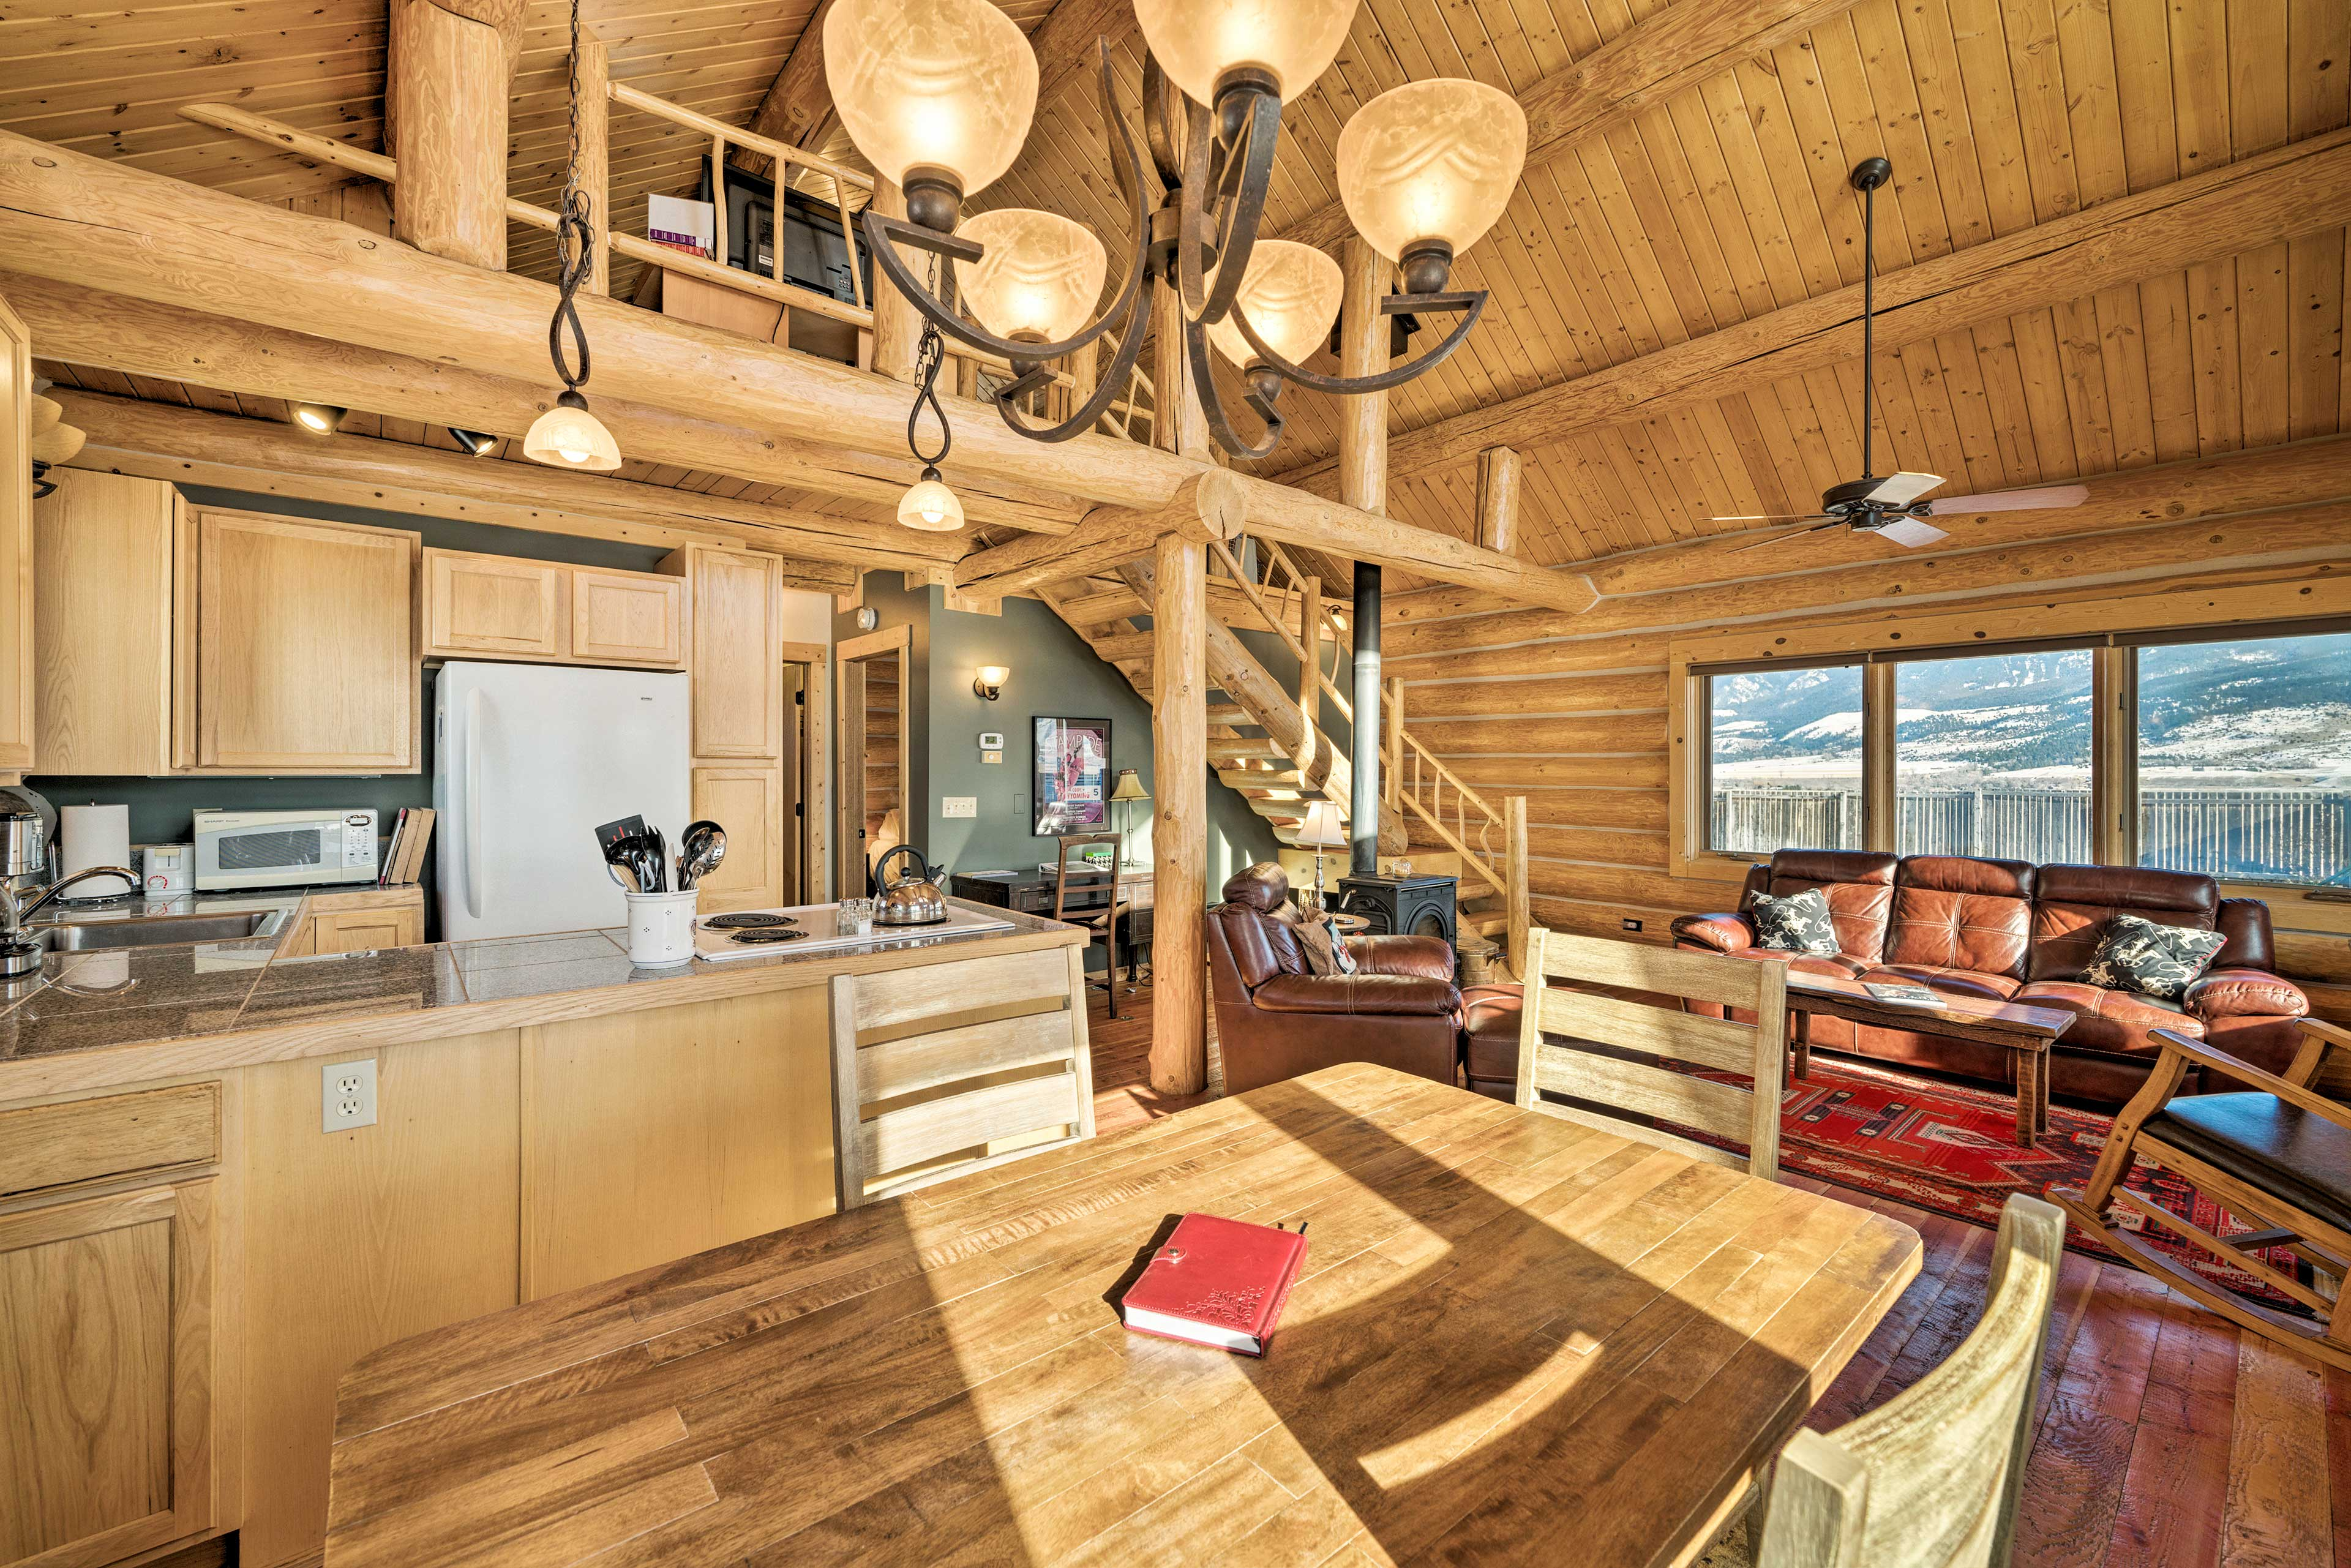 Natural log accents and vaulted ceilings highlight the open interior.